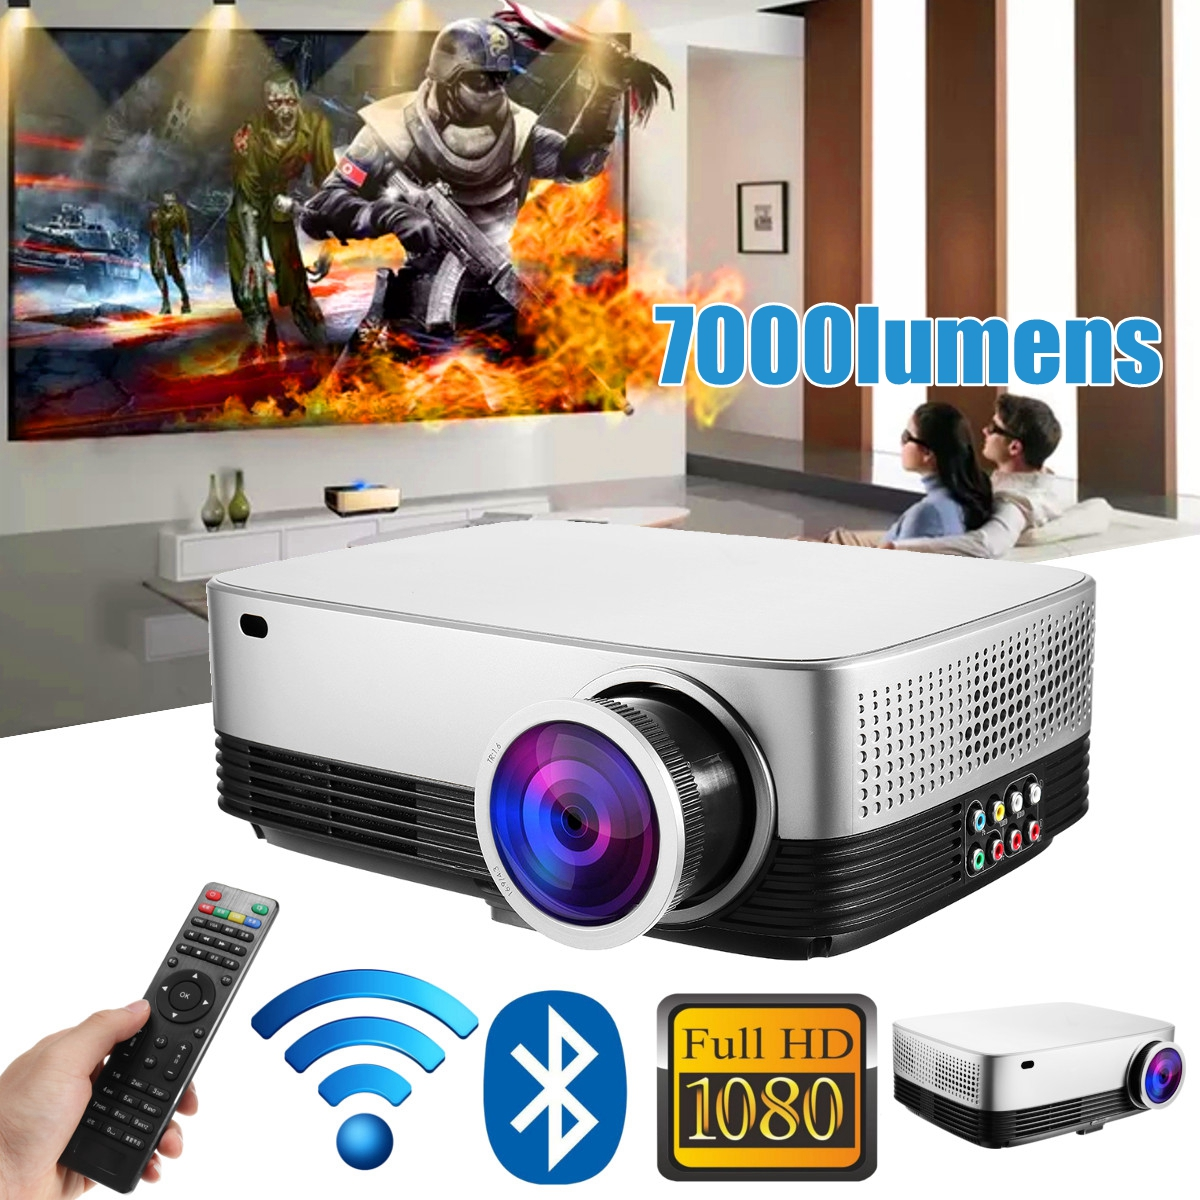 Portable LCD Projector Home Cinema Theater Movie wifi Bluetooth LED Proyector HD Mini Projectors Support 1080P 7000 Lumens